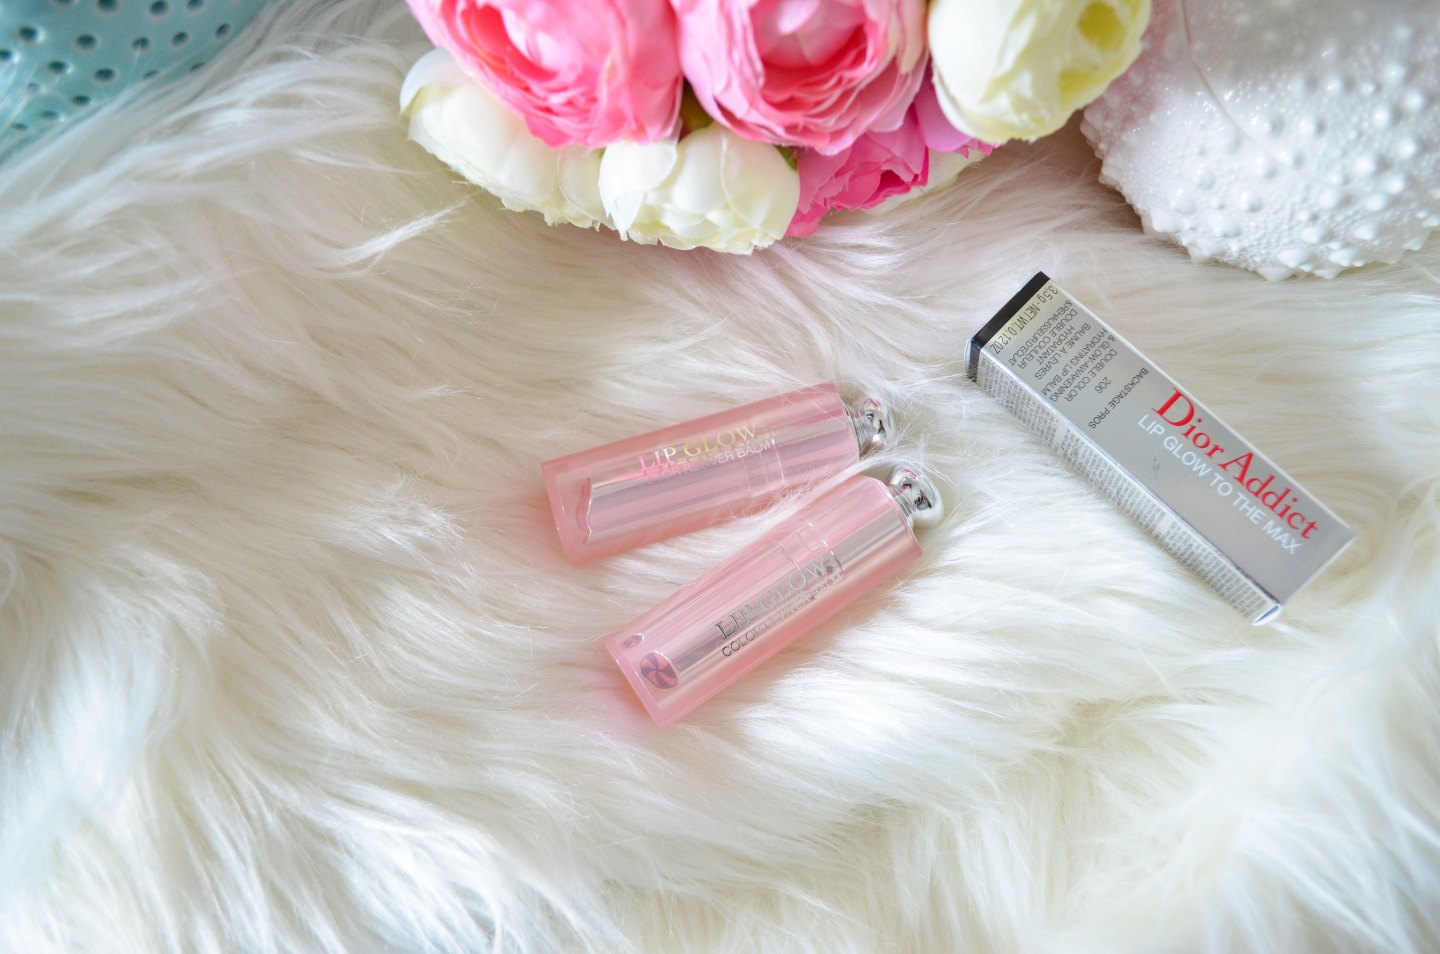 Reviewing the new Dior Addict Lip Glow To The Max